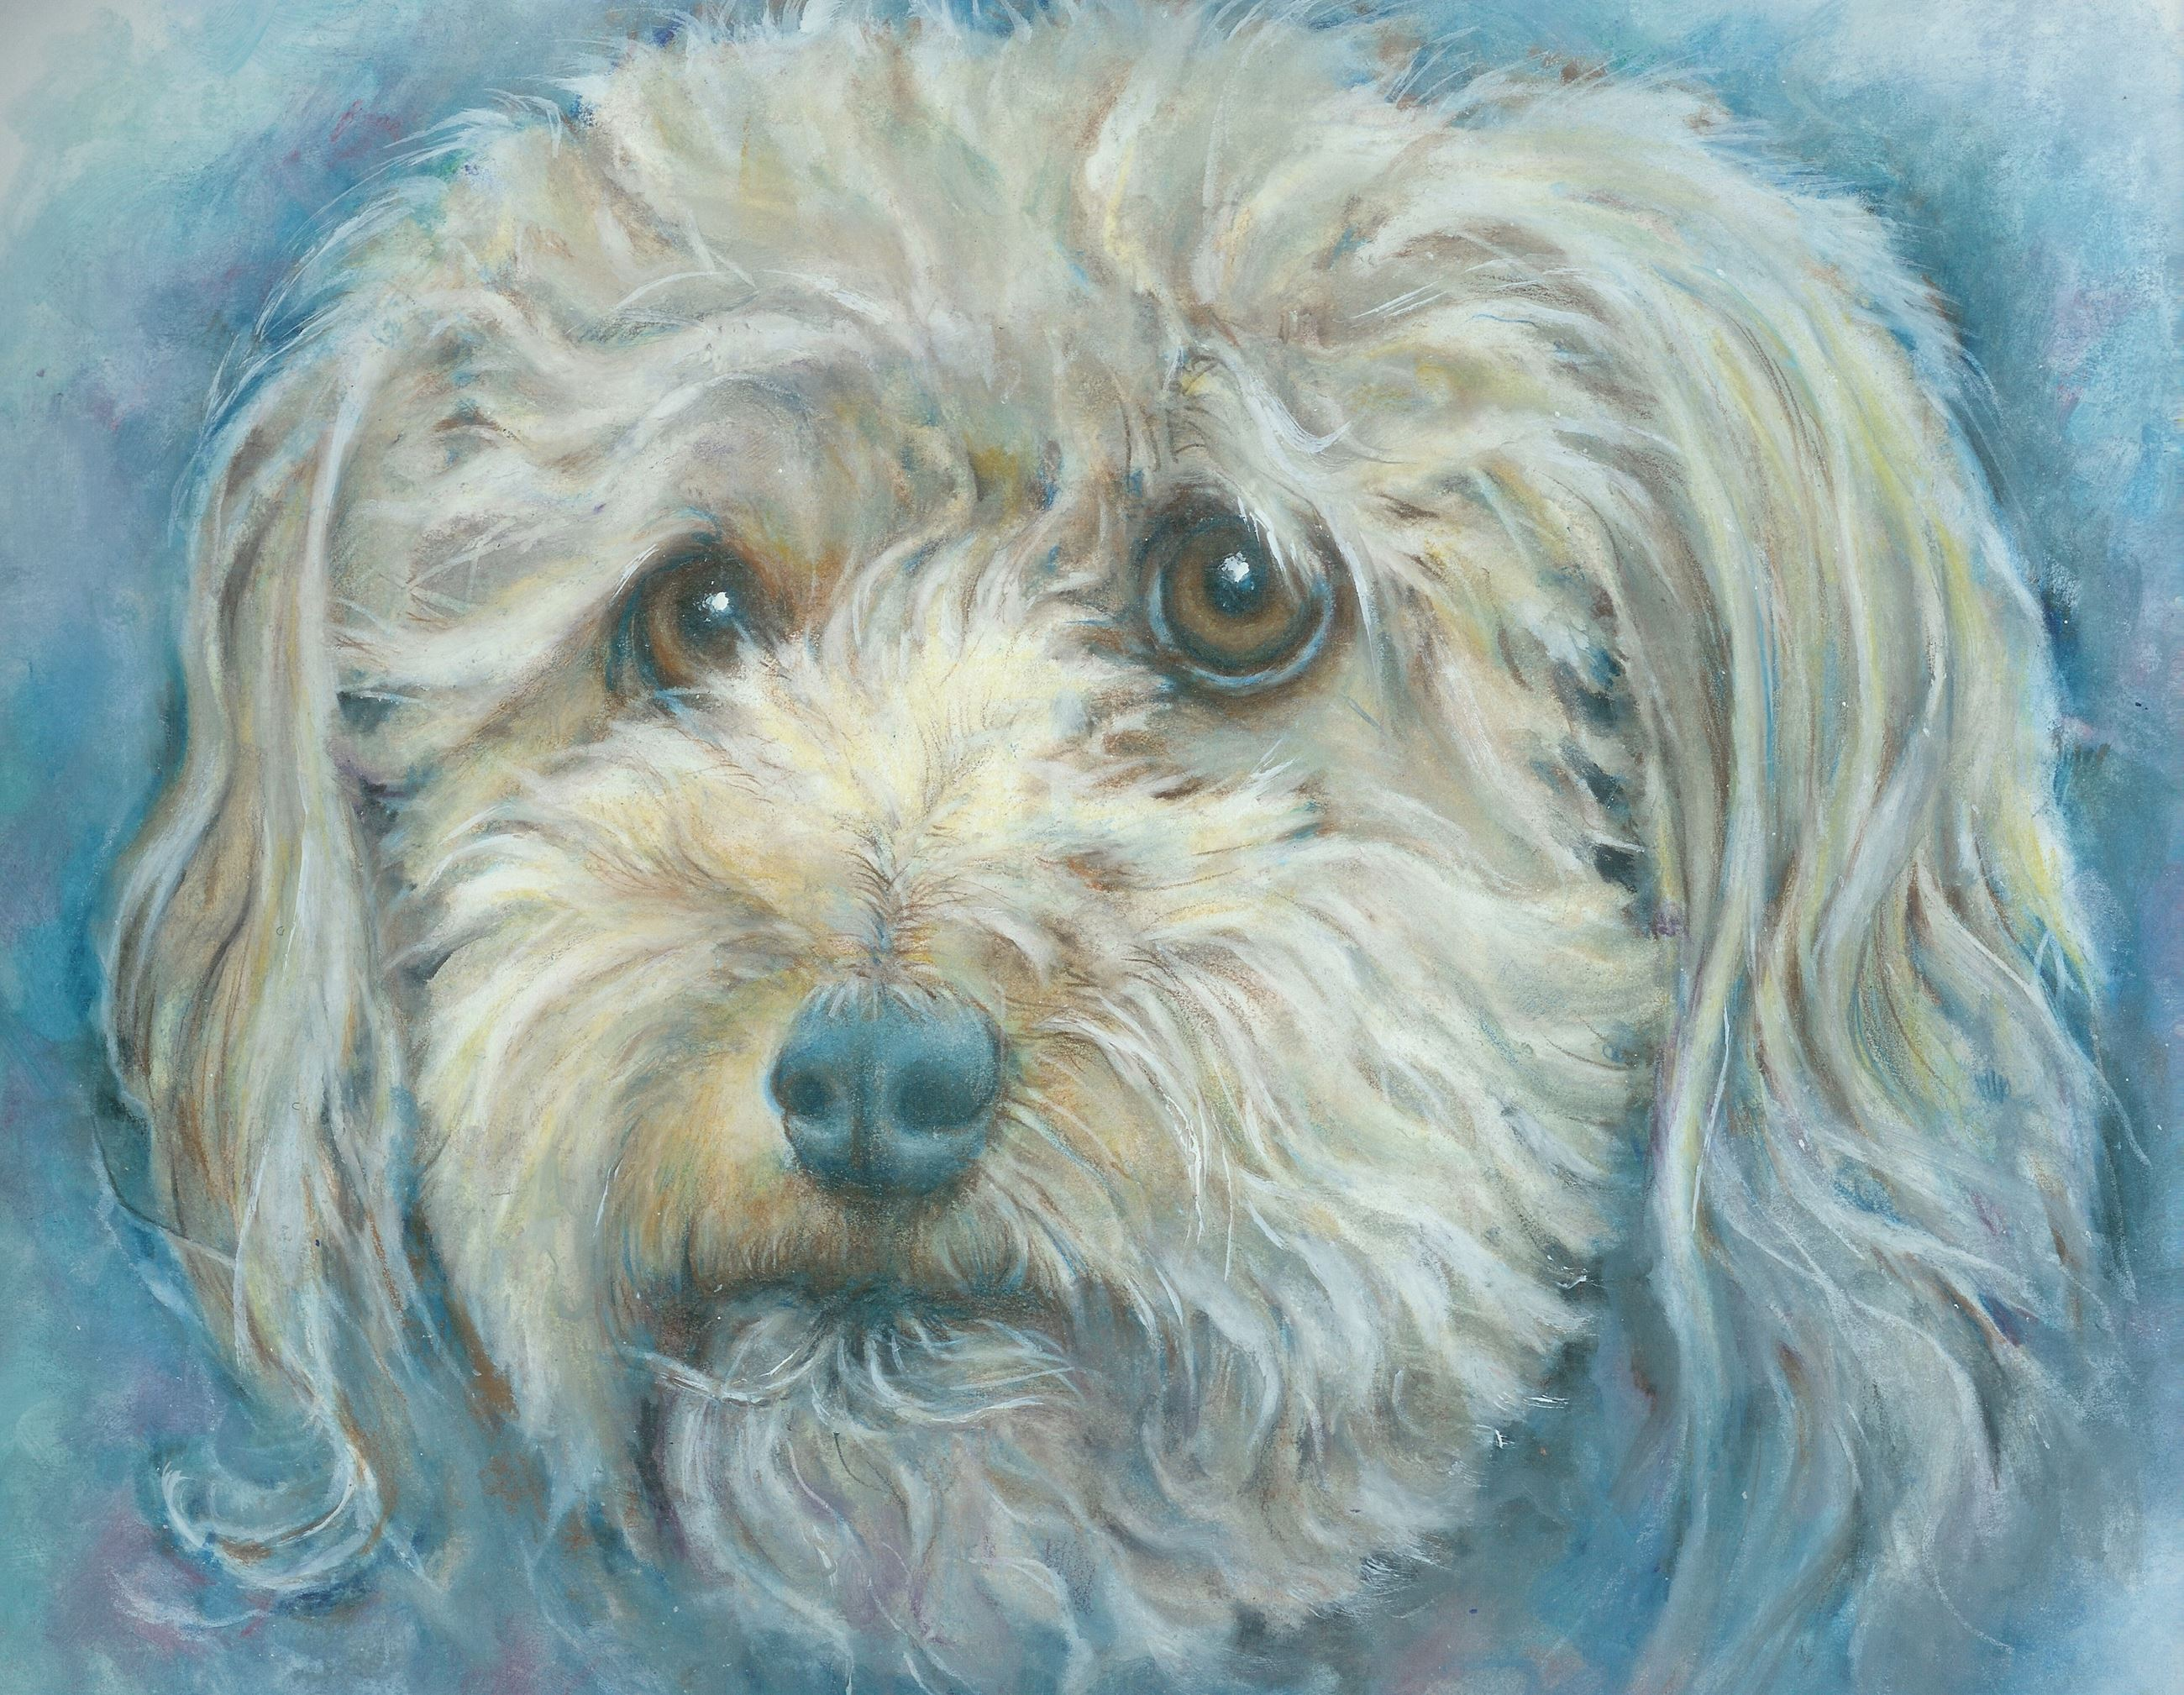 painting of a fluffy white dog's face with brown eyes and a blue nose